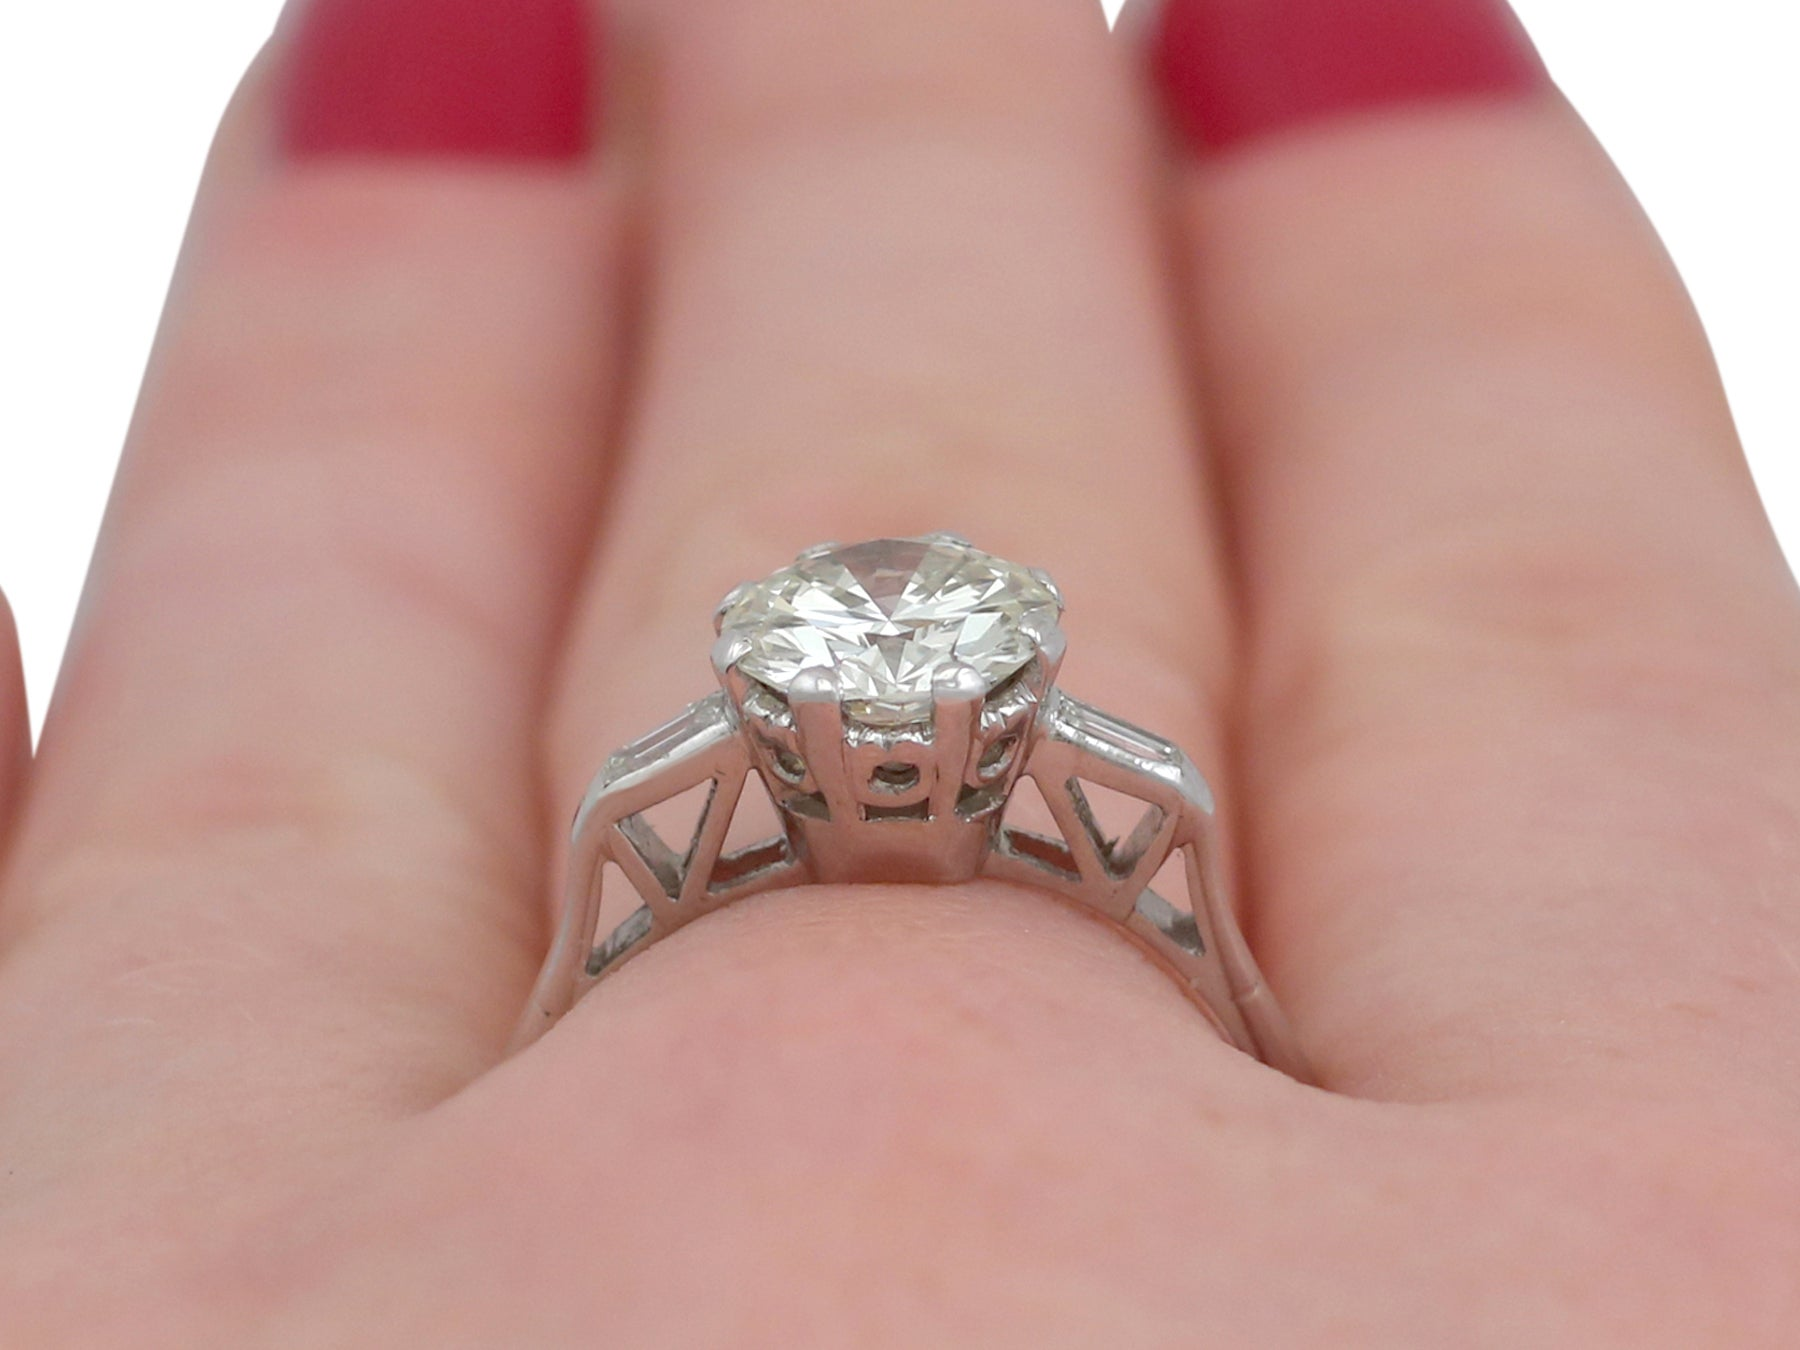 1950s 1.92 Carat Diamond and White Gold Solitaire Ring at 1stdibs